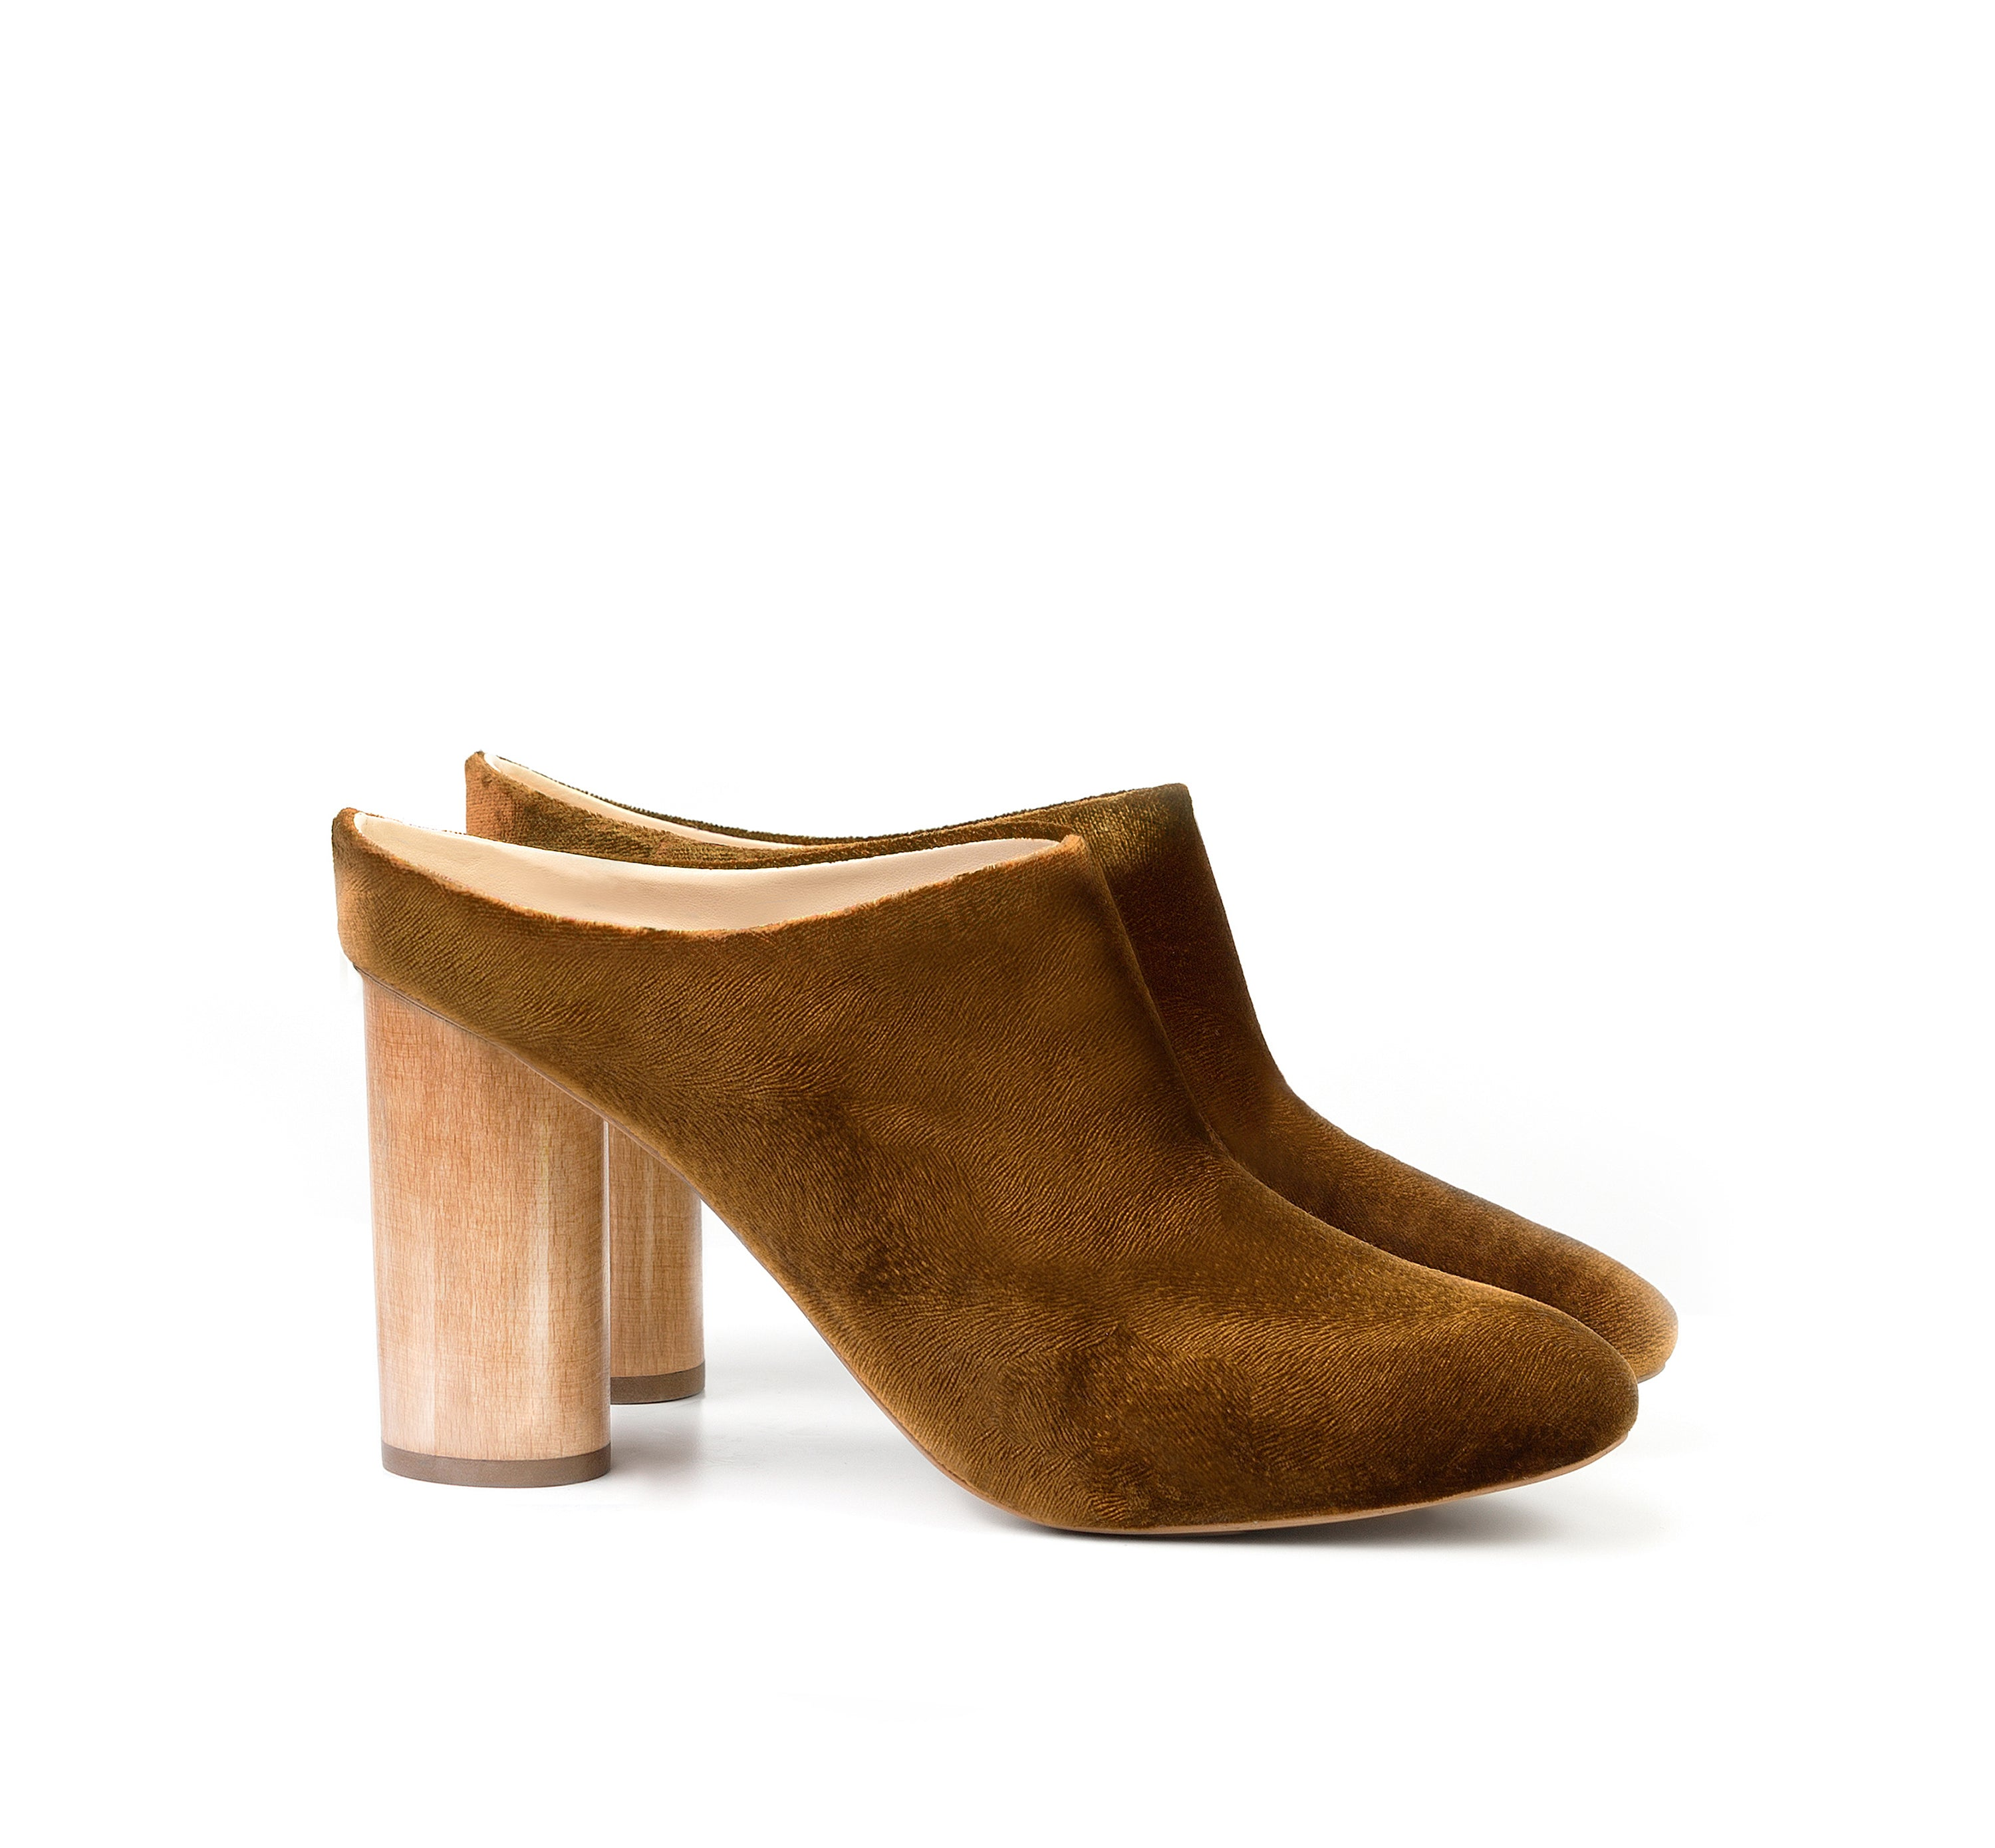 High Mule in Amber Velvet. Sustainable Wood Heel. Luxury shoes. Ethical and sustainable footwear by Sydney Brown.